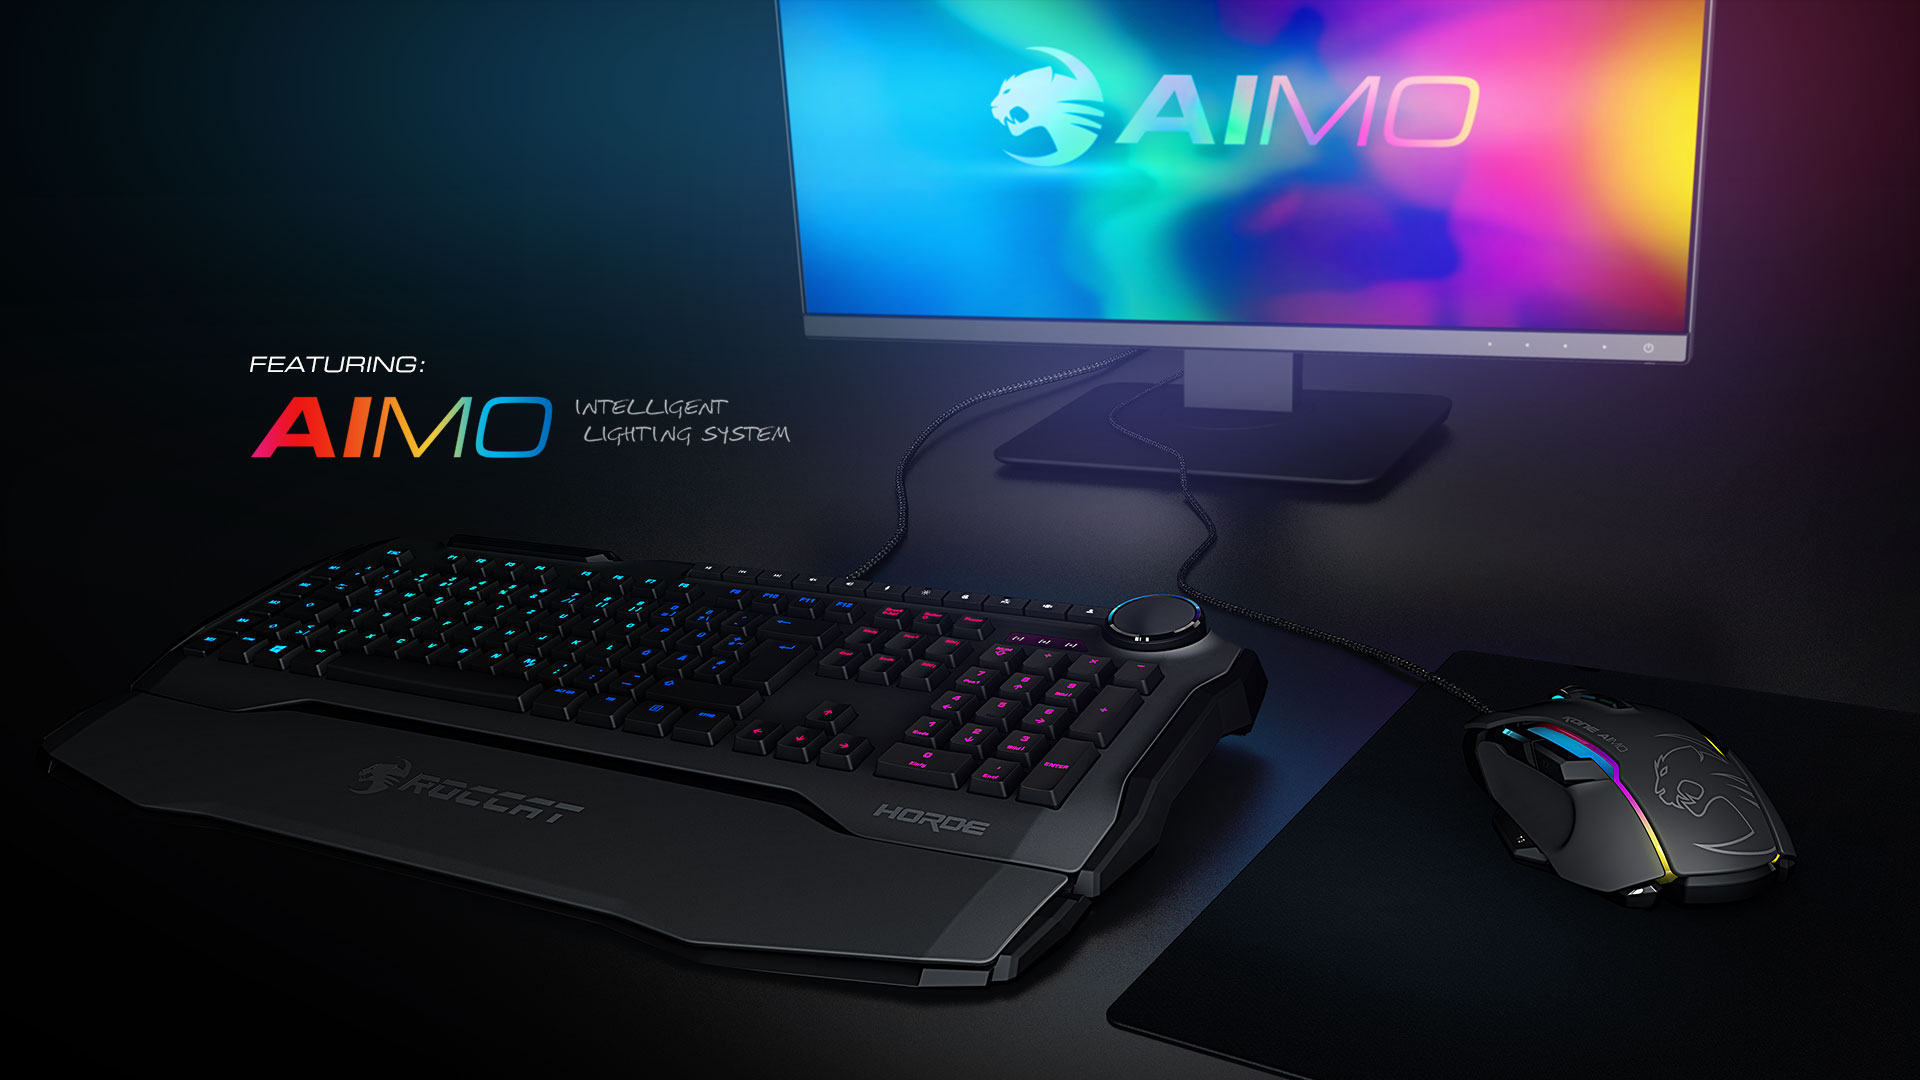 Gamescom 2017: ROCCAT Horde AIMO and Kone AIMO Hands-On